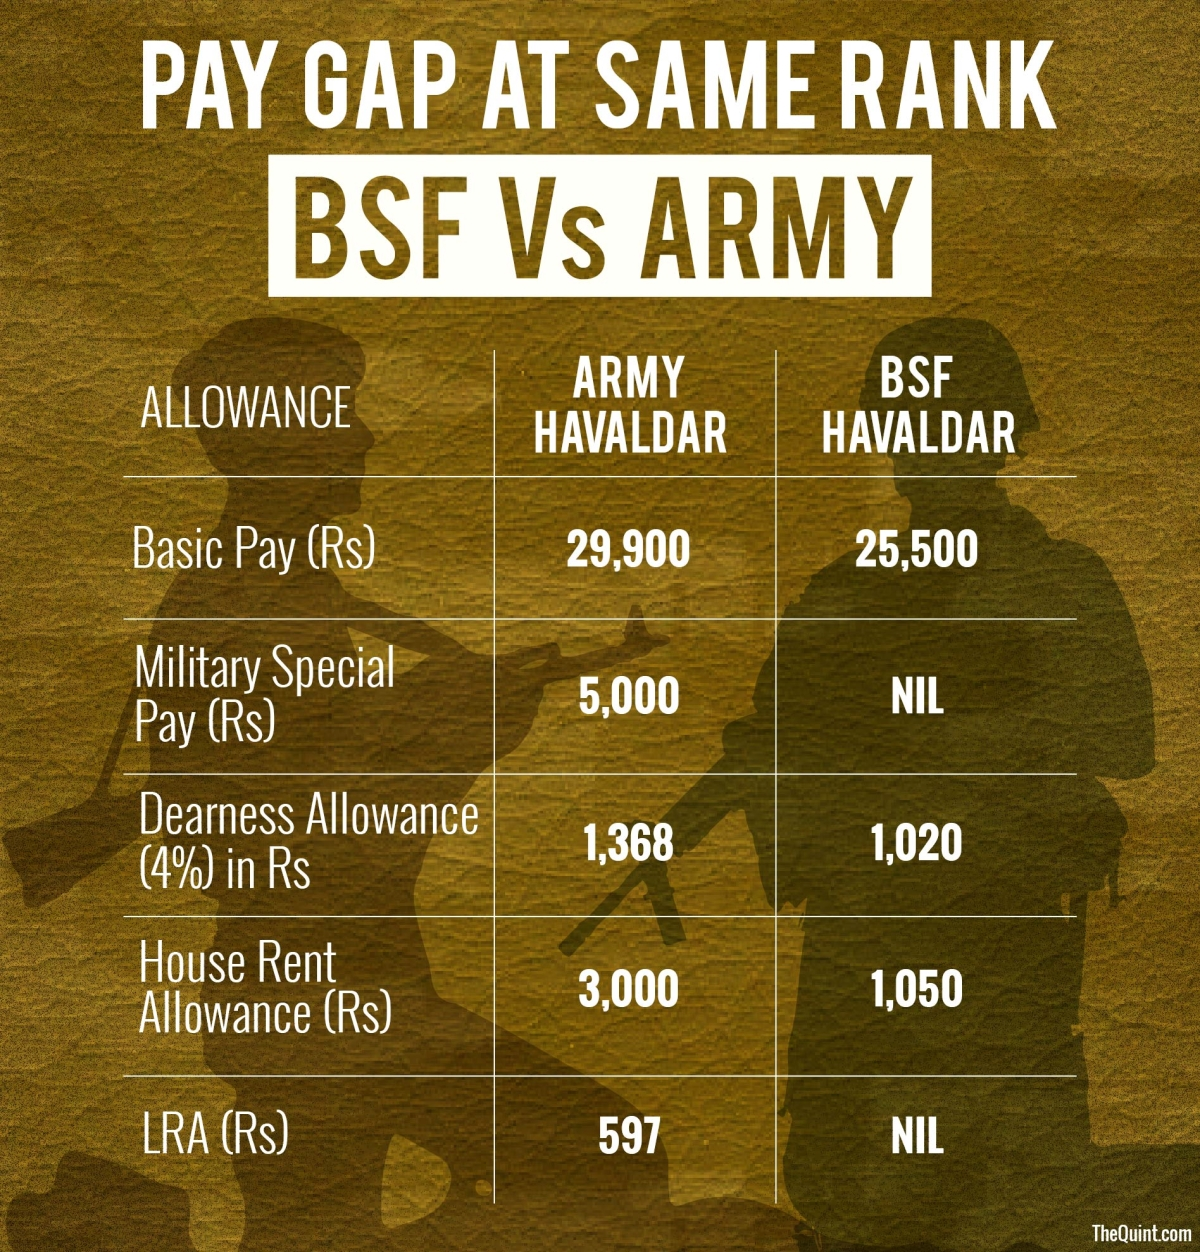 They Matter Too: Why BSF Men Get Fewer Allowances Than Army